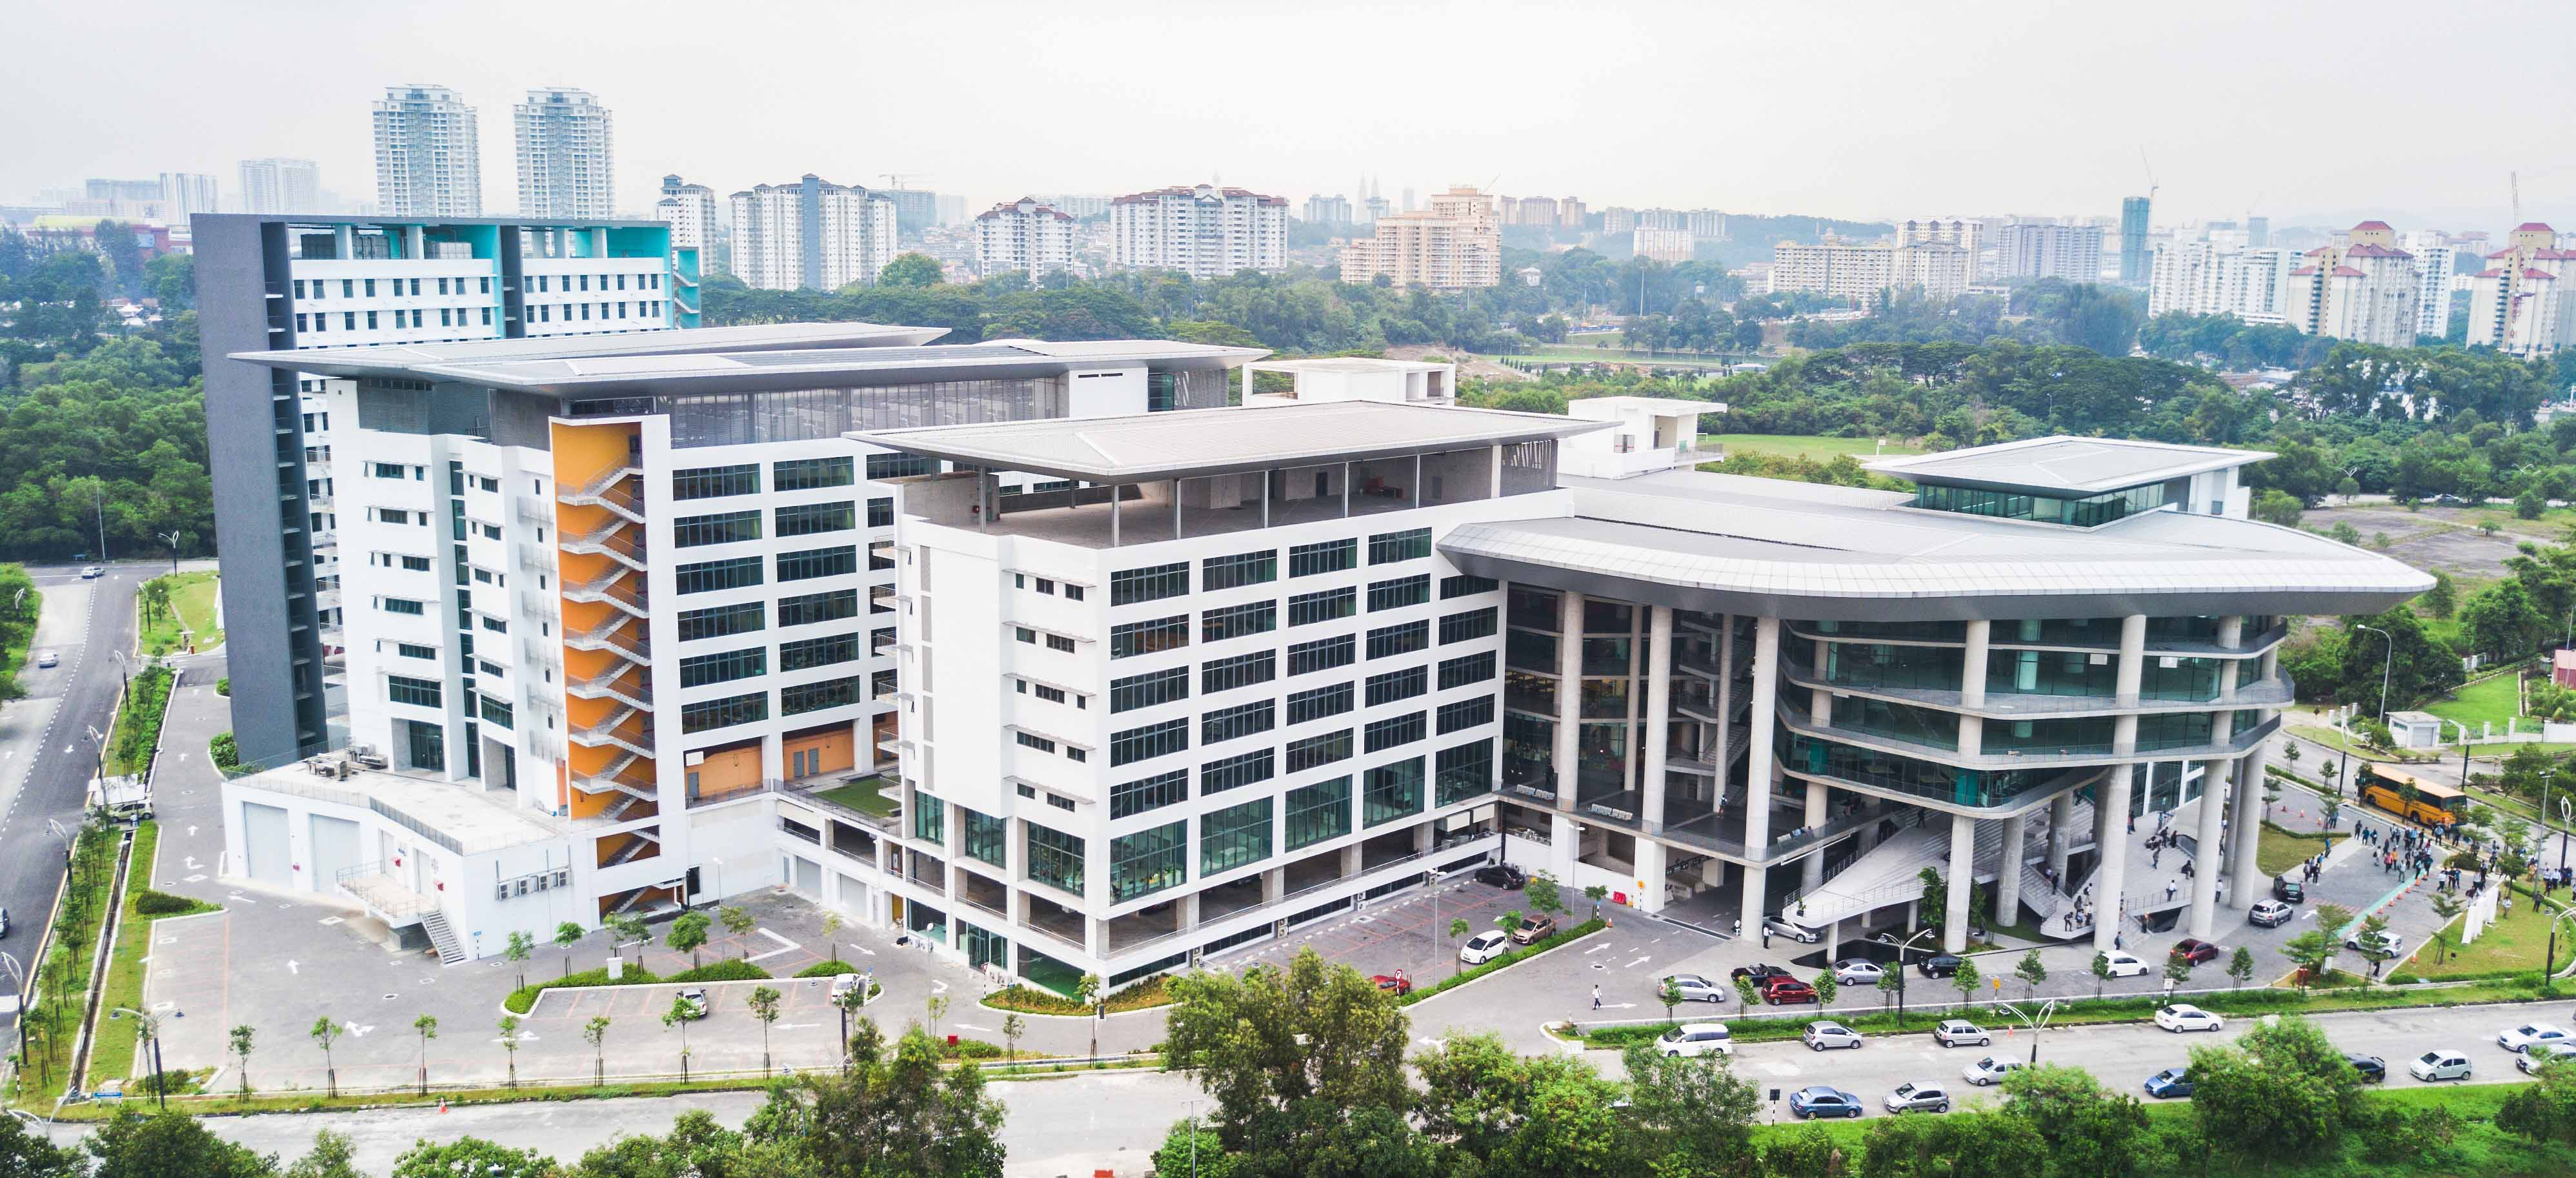 apu s new campus now open asia pacific university apu asia pacific university apu